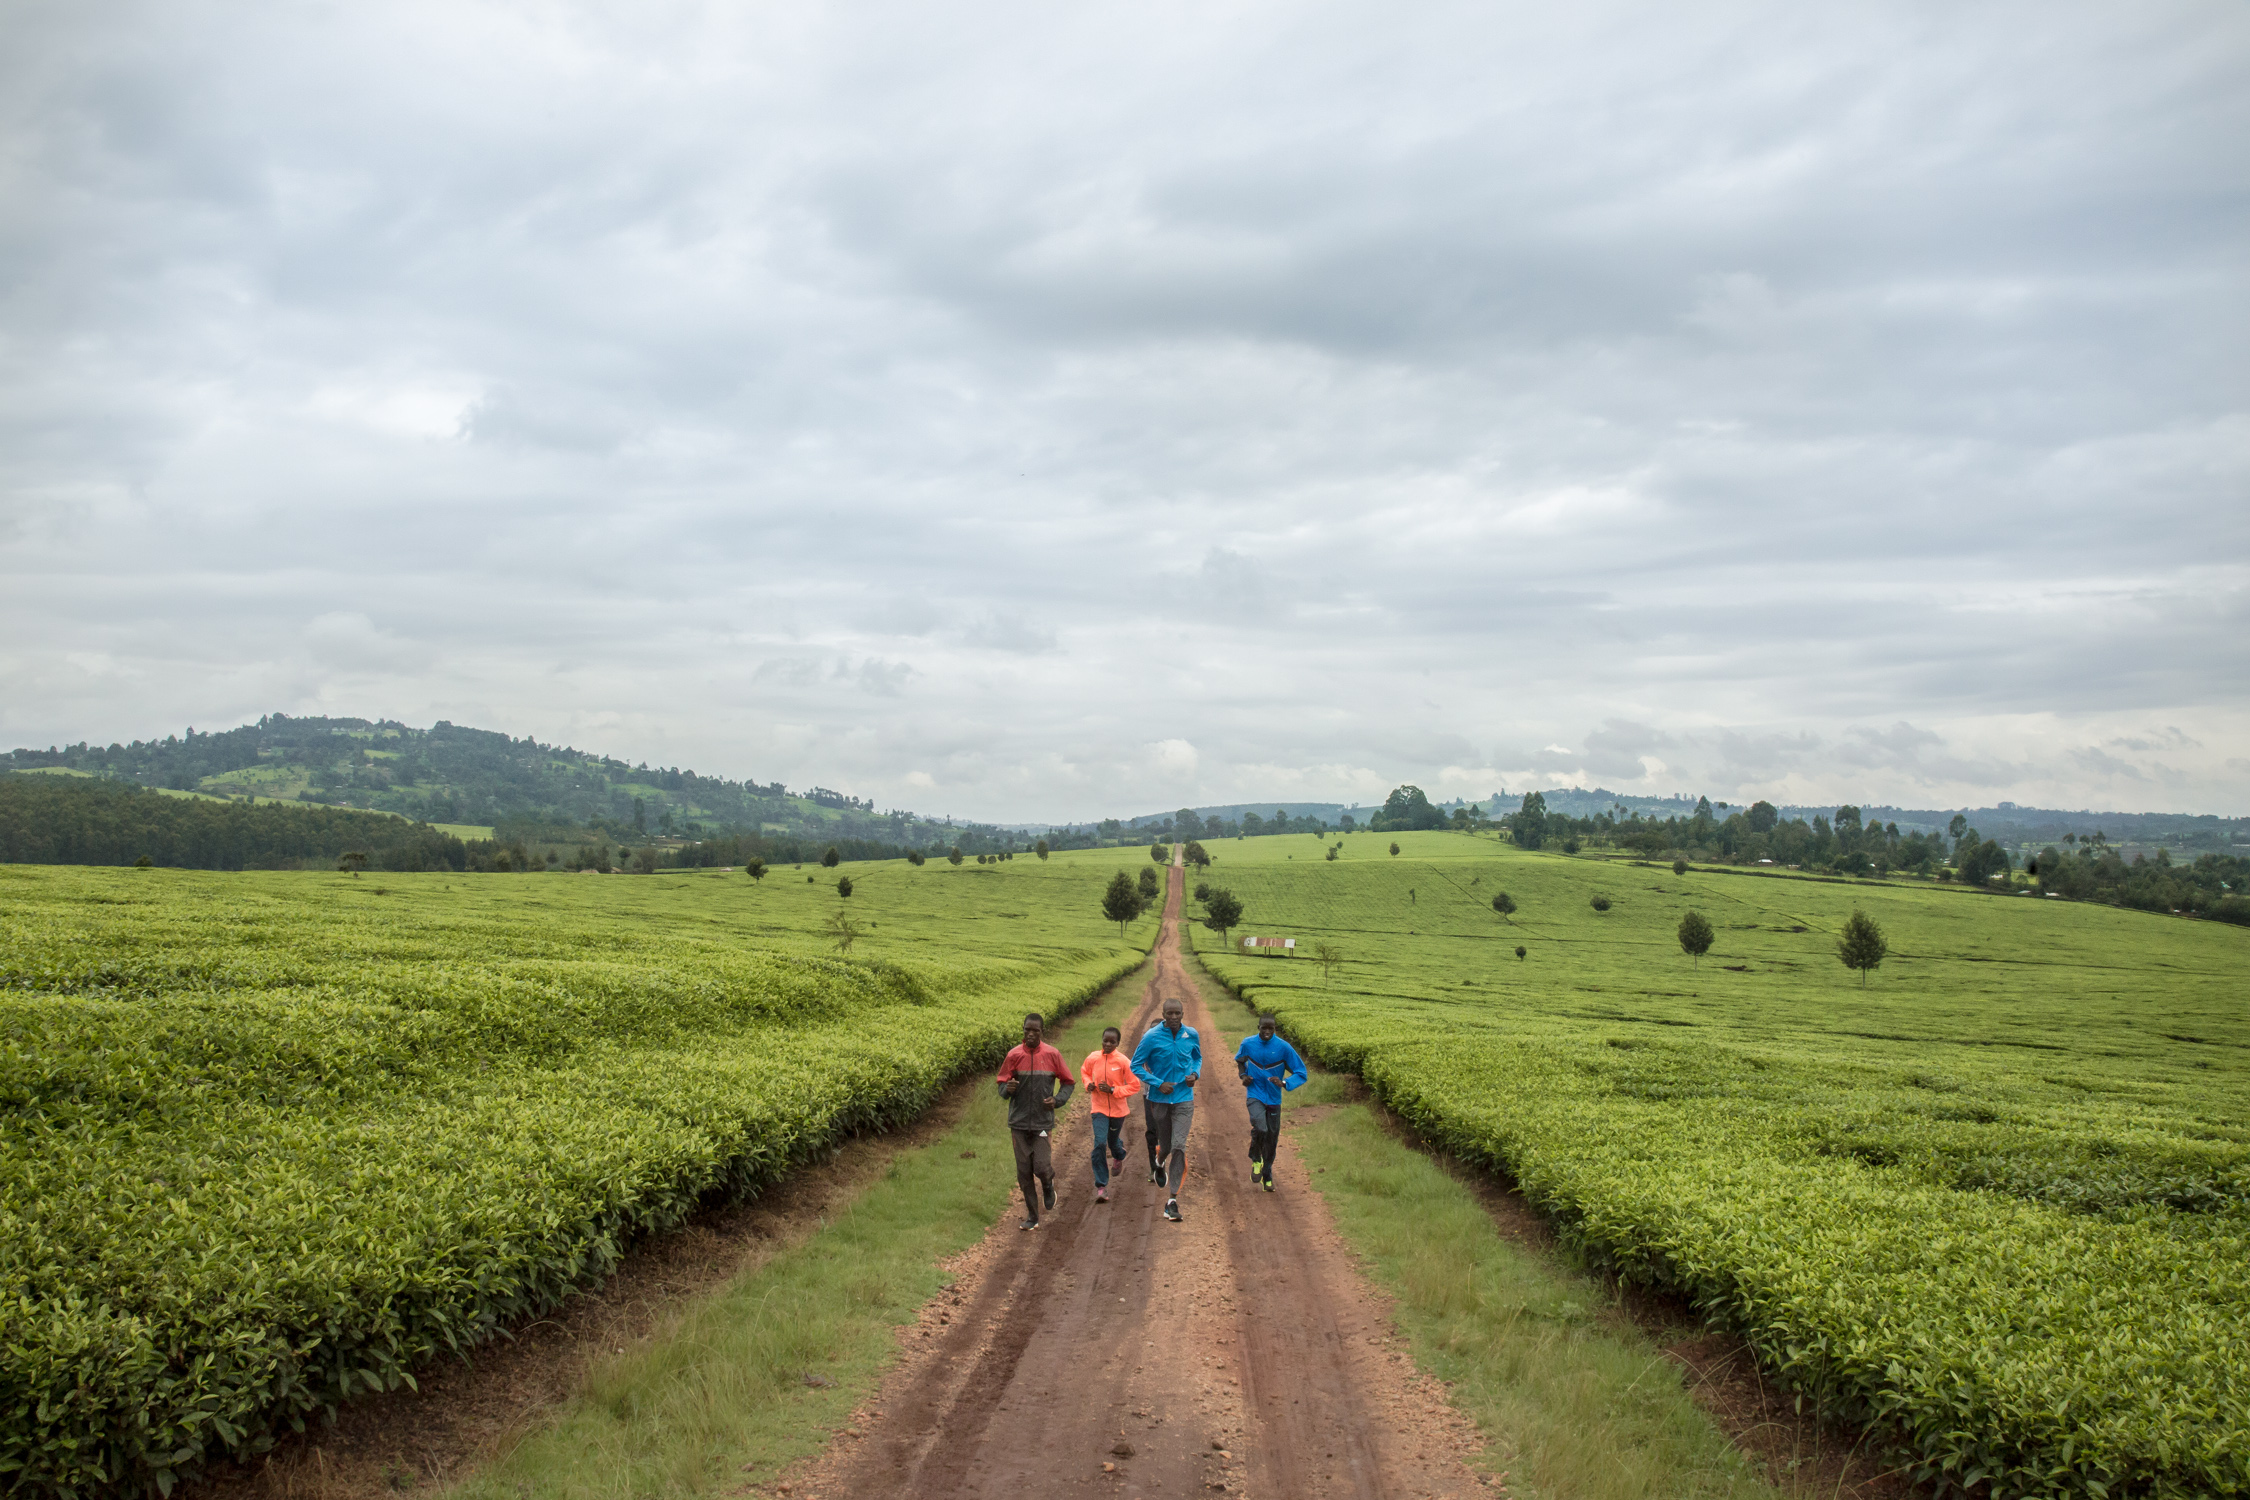 Rose Chelimo and her team of marathon runners training in the Kenyan tea fields.